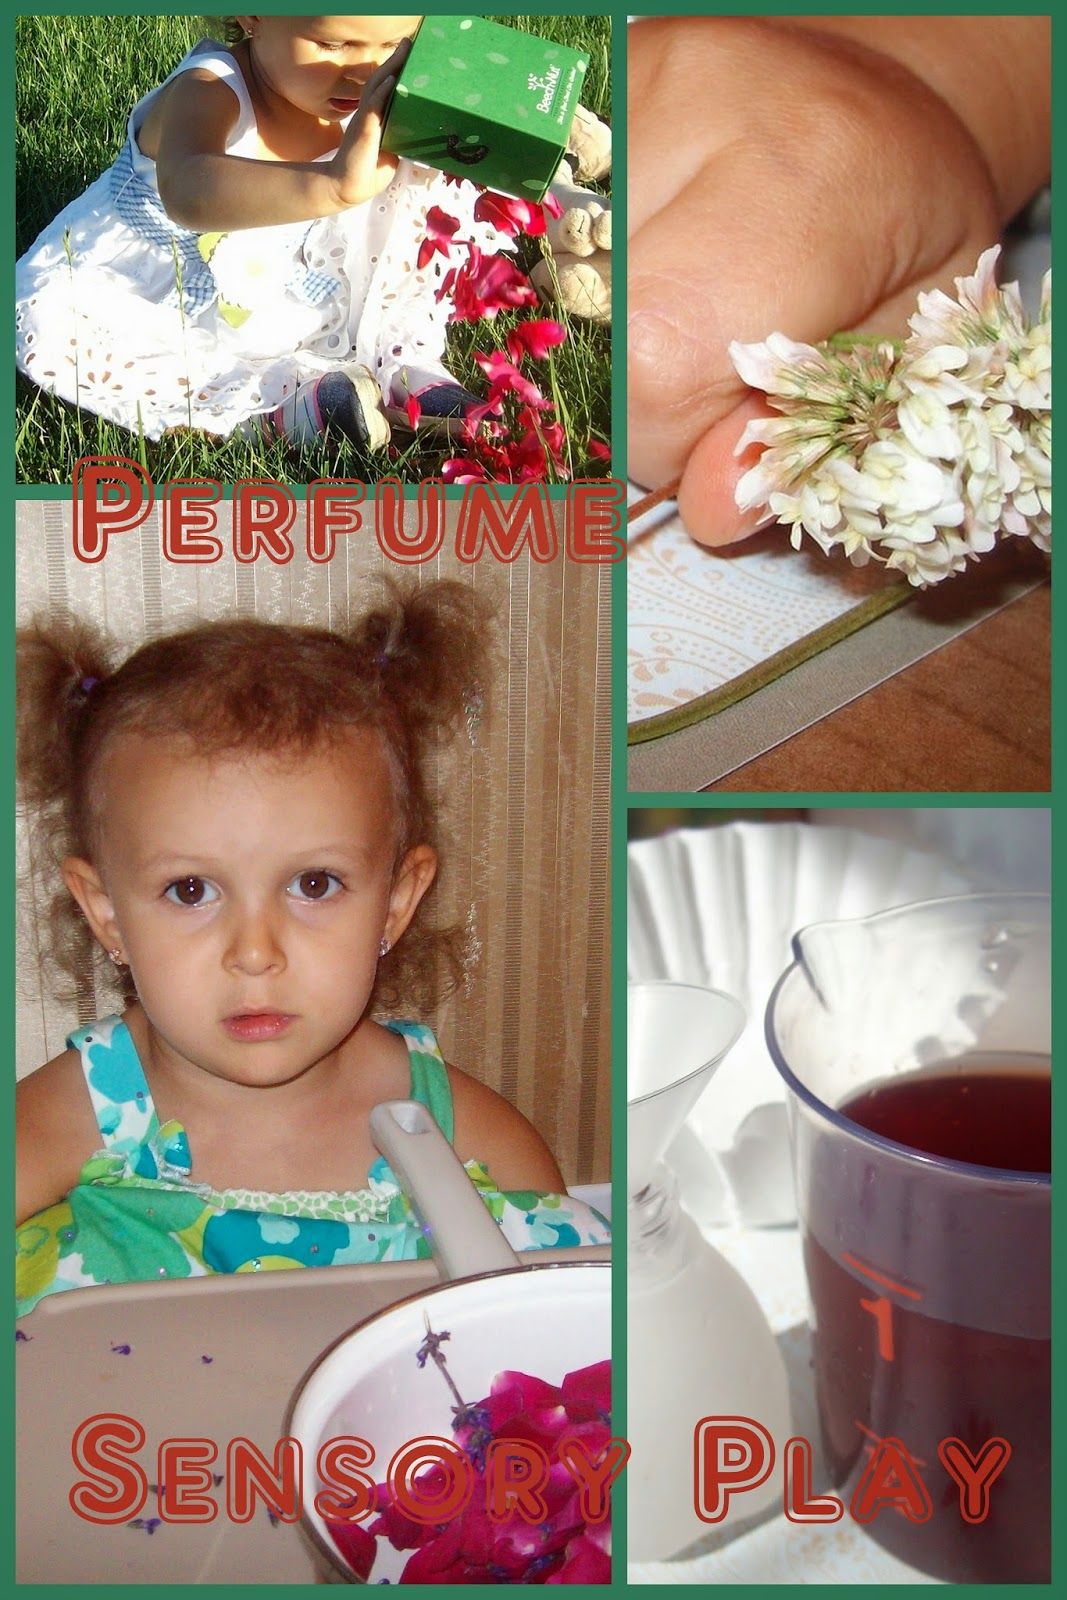 Sensory play with flowers and boxes locked with keys, flower sensory bin, making all natural perfume, fine motor and problem solving skills with keys, fun activity for phonemic awareness and listening skills, letter K = summer fun outside.